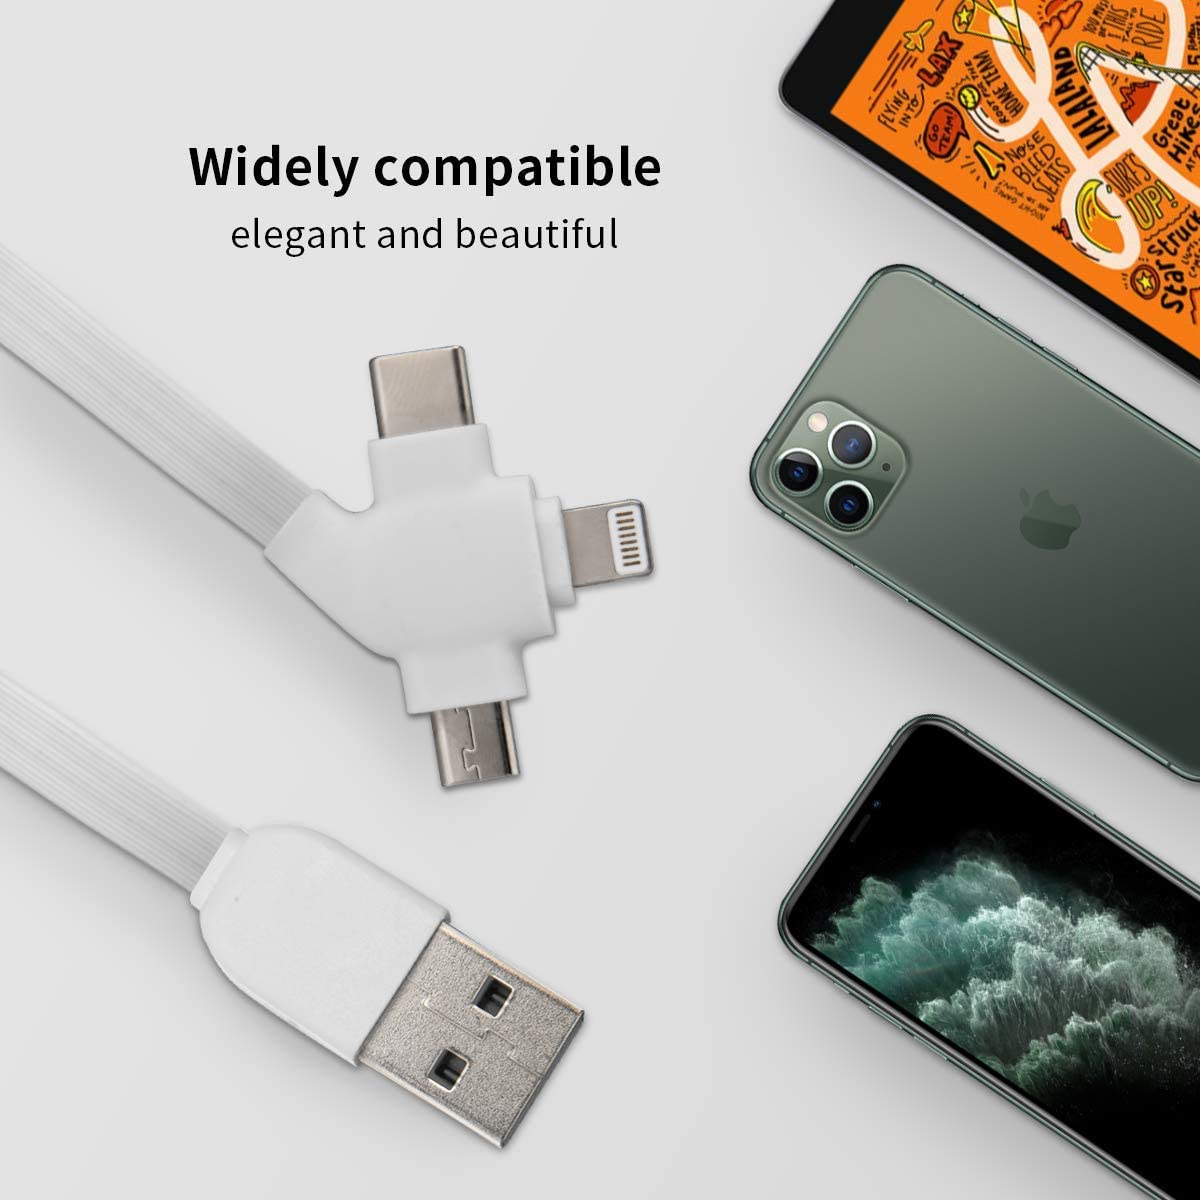 2x2x0.8 Micro USB Cable Particular Colorful Supplies Pencils 3-in-1 Retractable USB Cable Type C Sync Fast Charging Cord for All Phone Tablets Mini Square